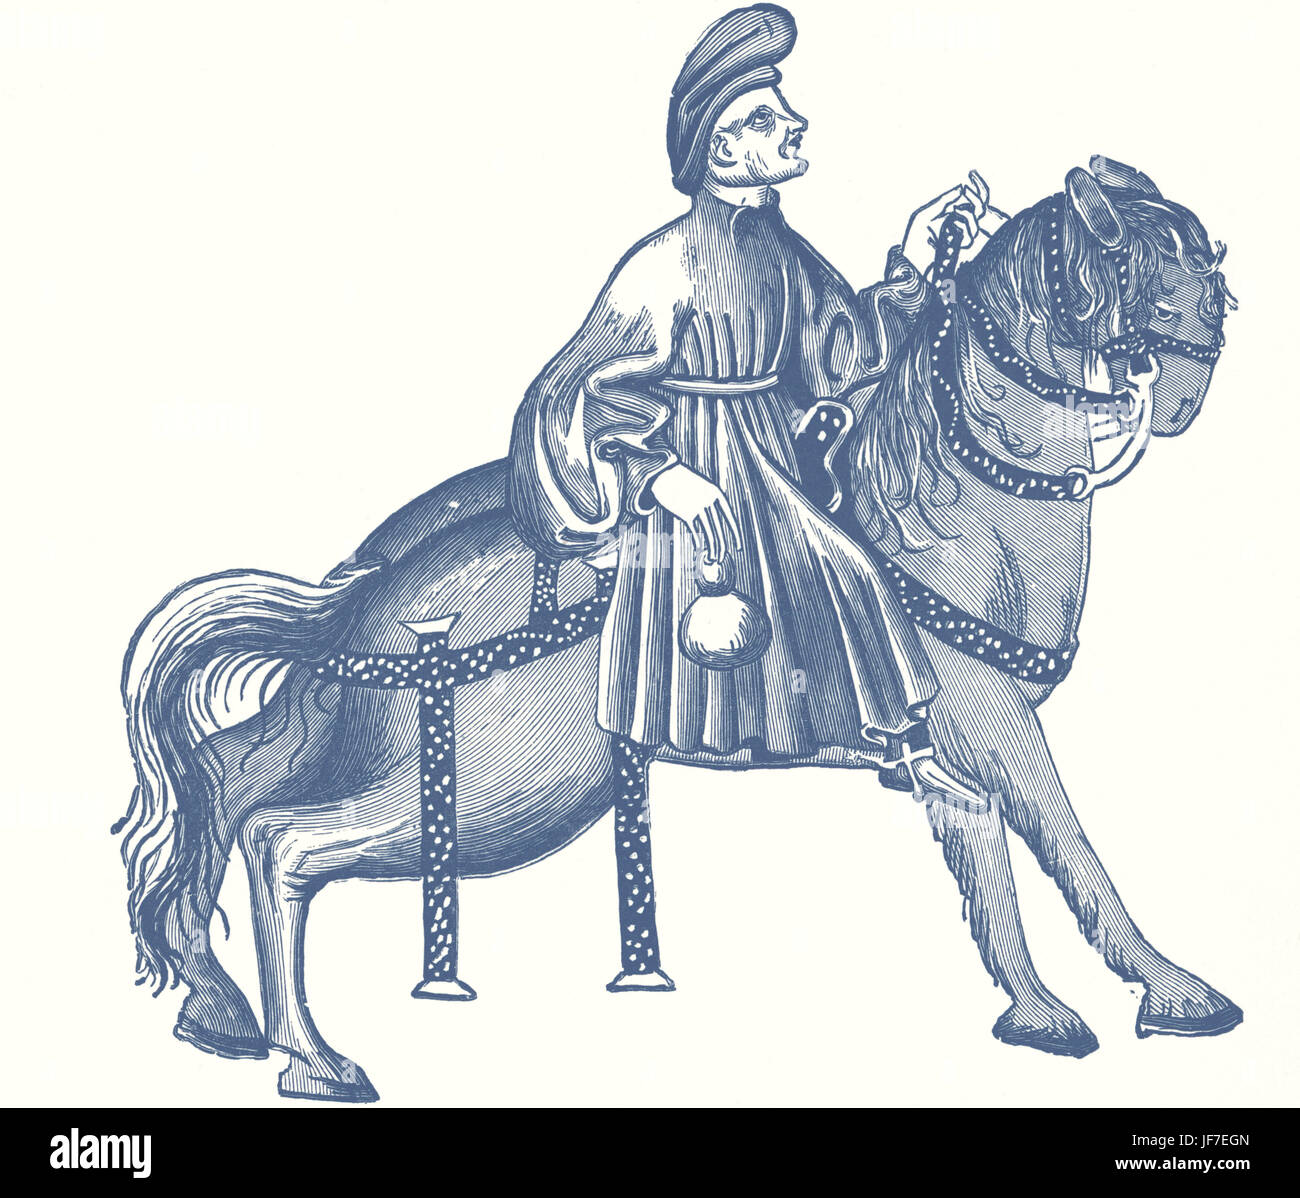 'The Manciple's Tale' -part of 'The Canterbury Tales' by Geoffrey Chaucer in the 14th century. - Stock Image